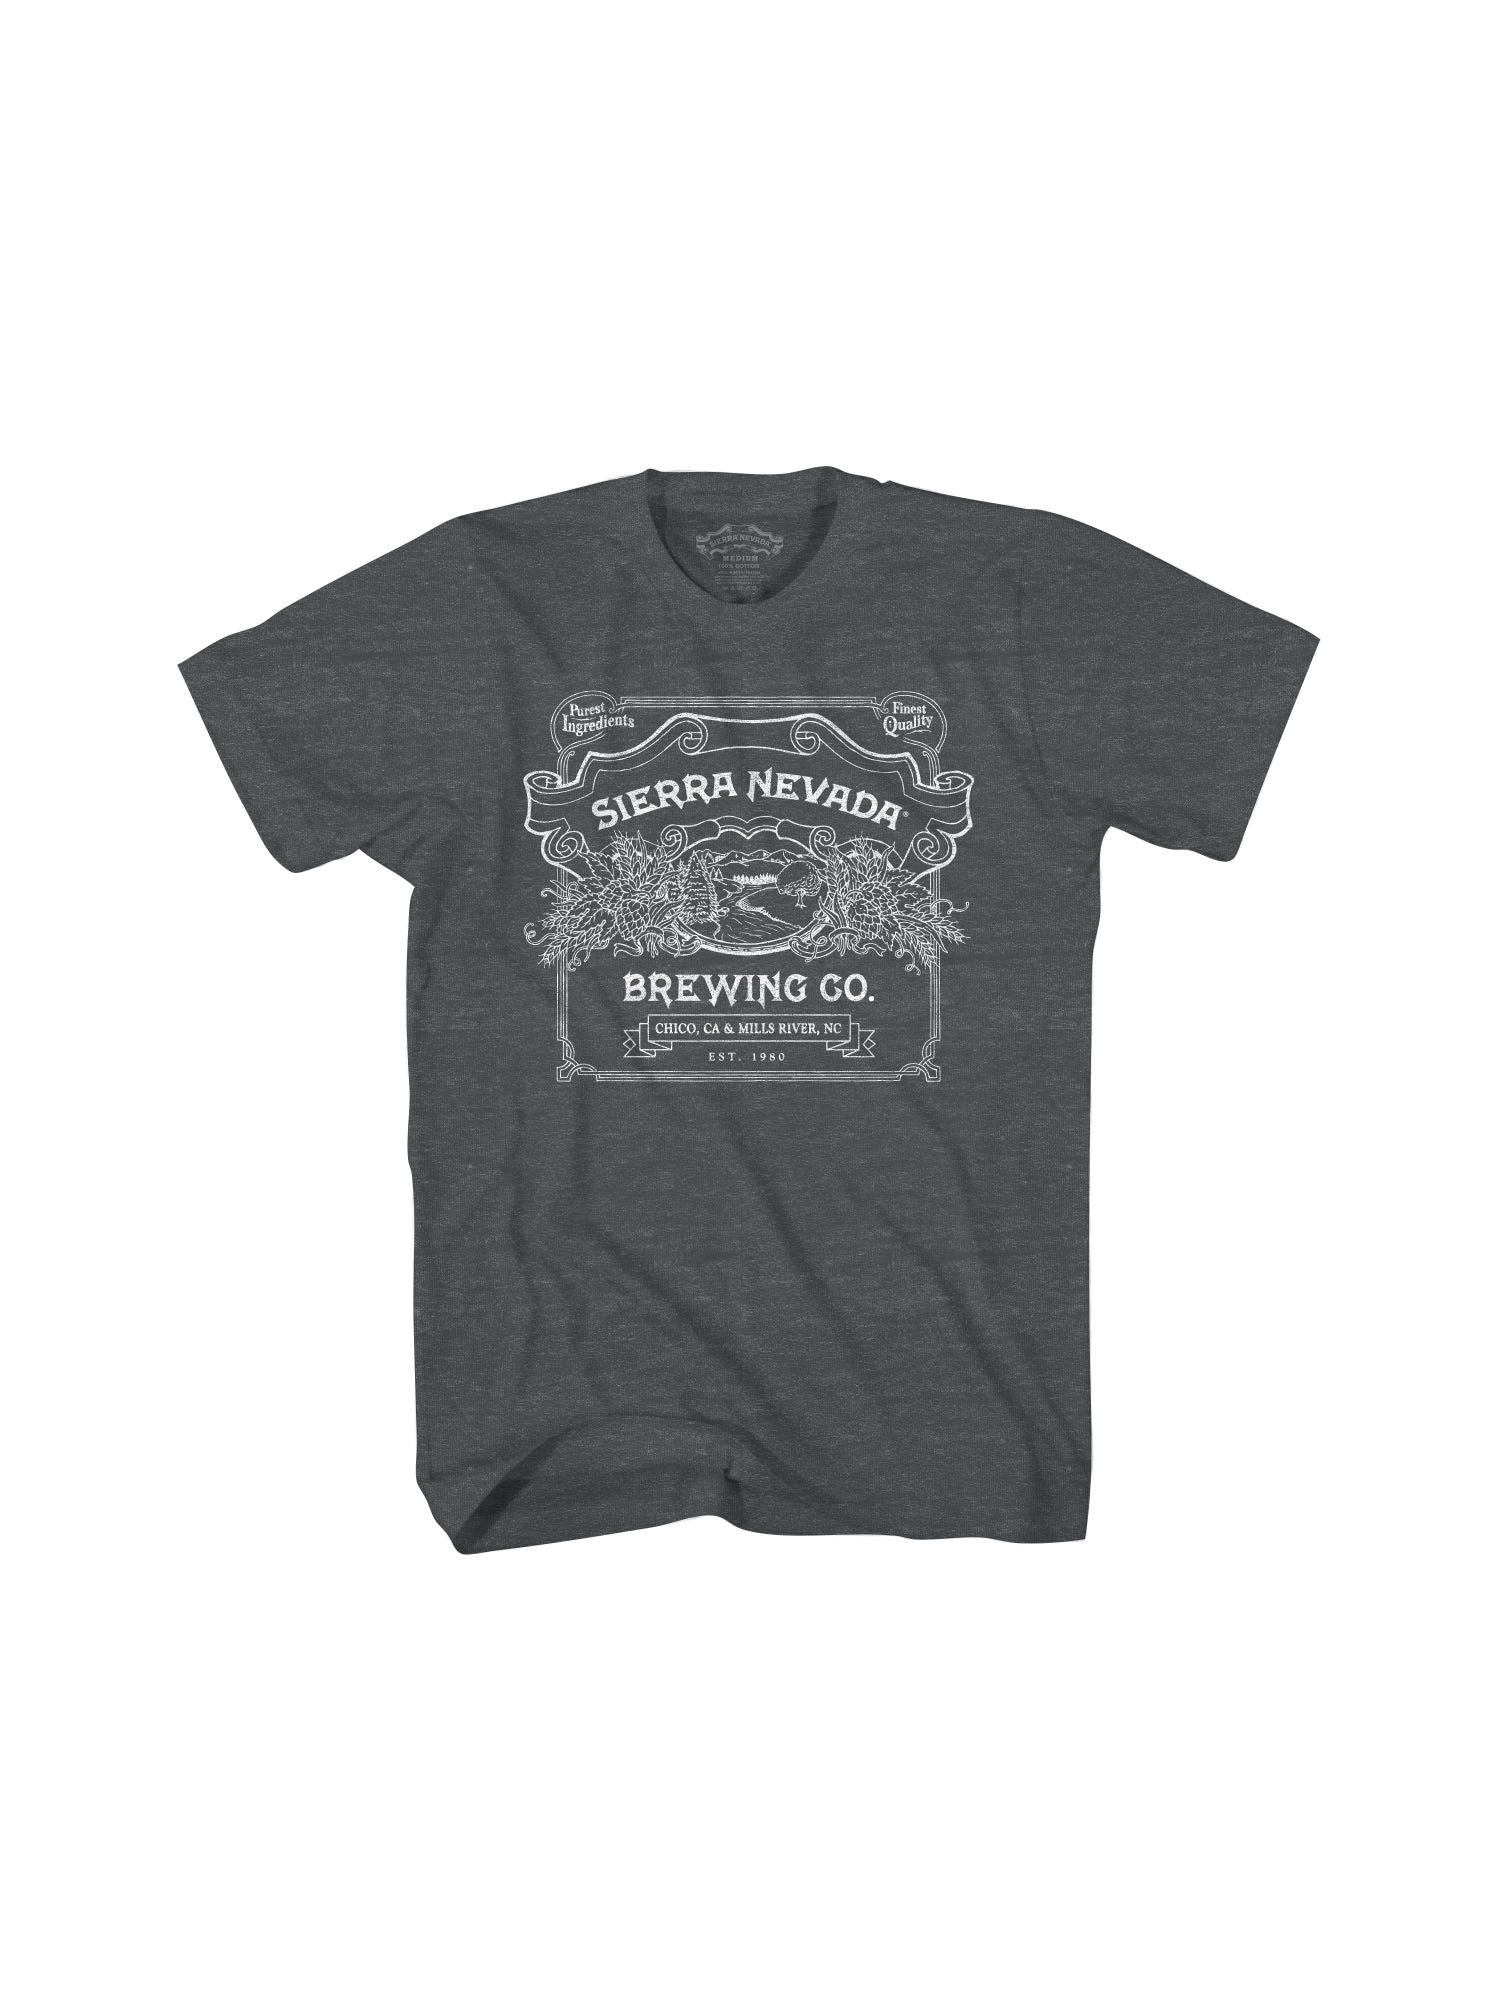 HANDCRAFTED S/S TSHIRT- CHARCOAL - Anderson Bros Design and Supply